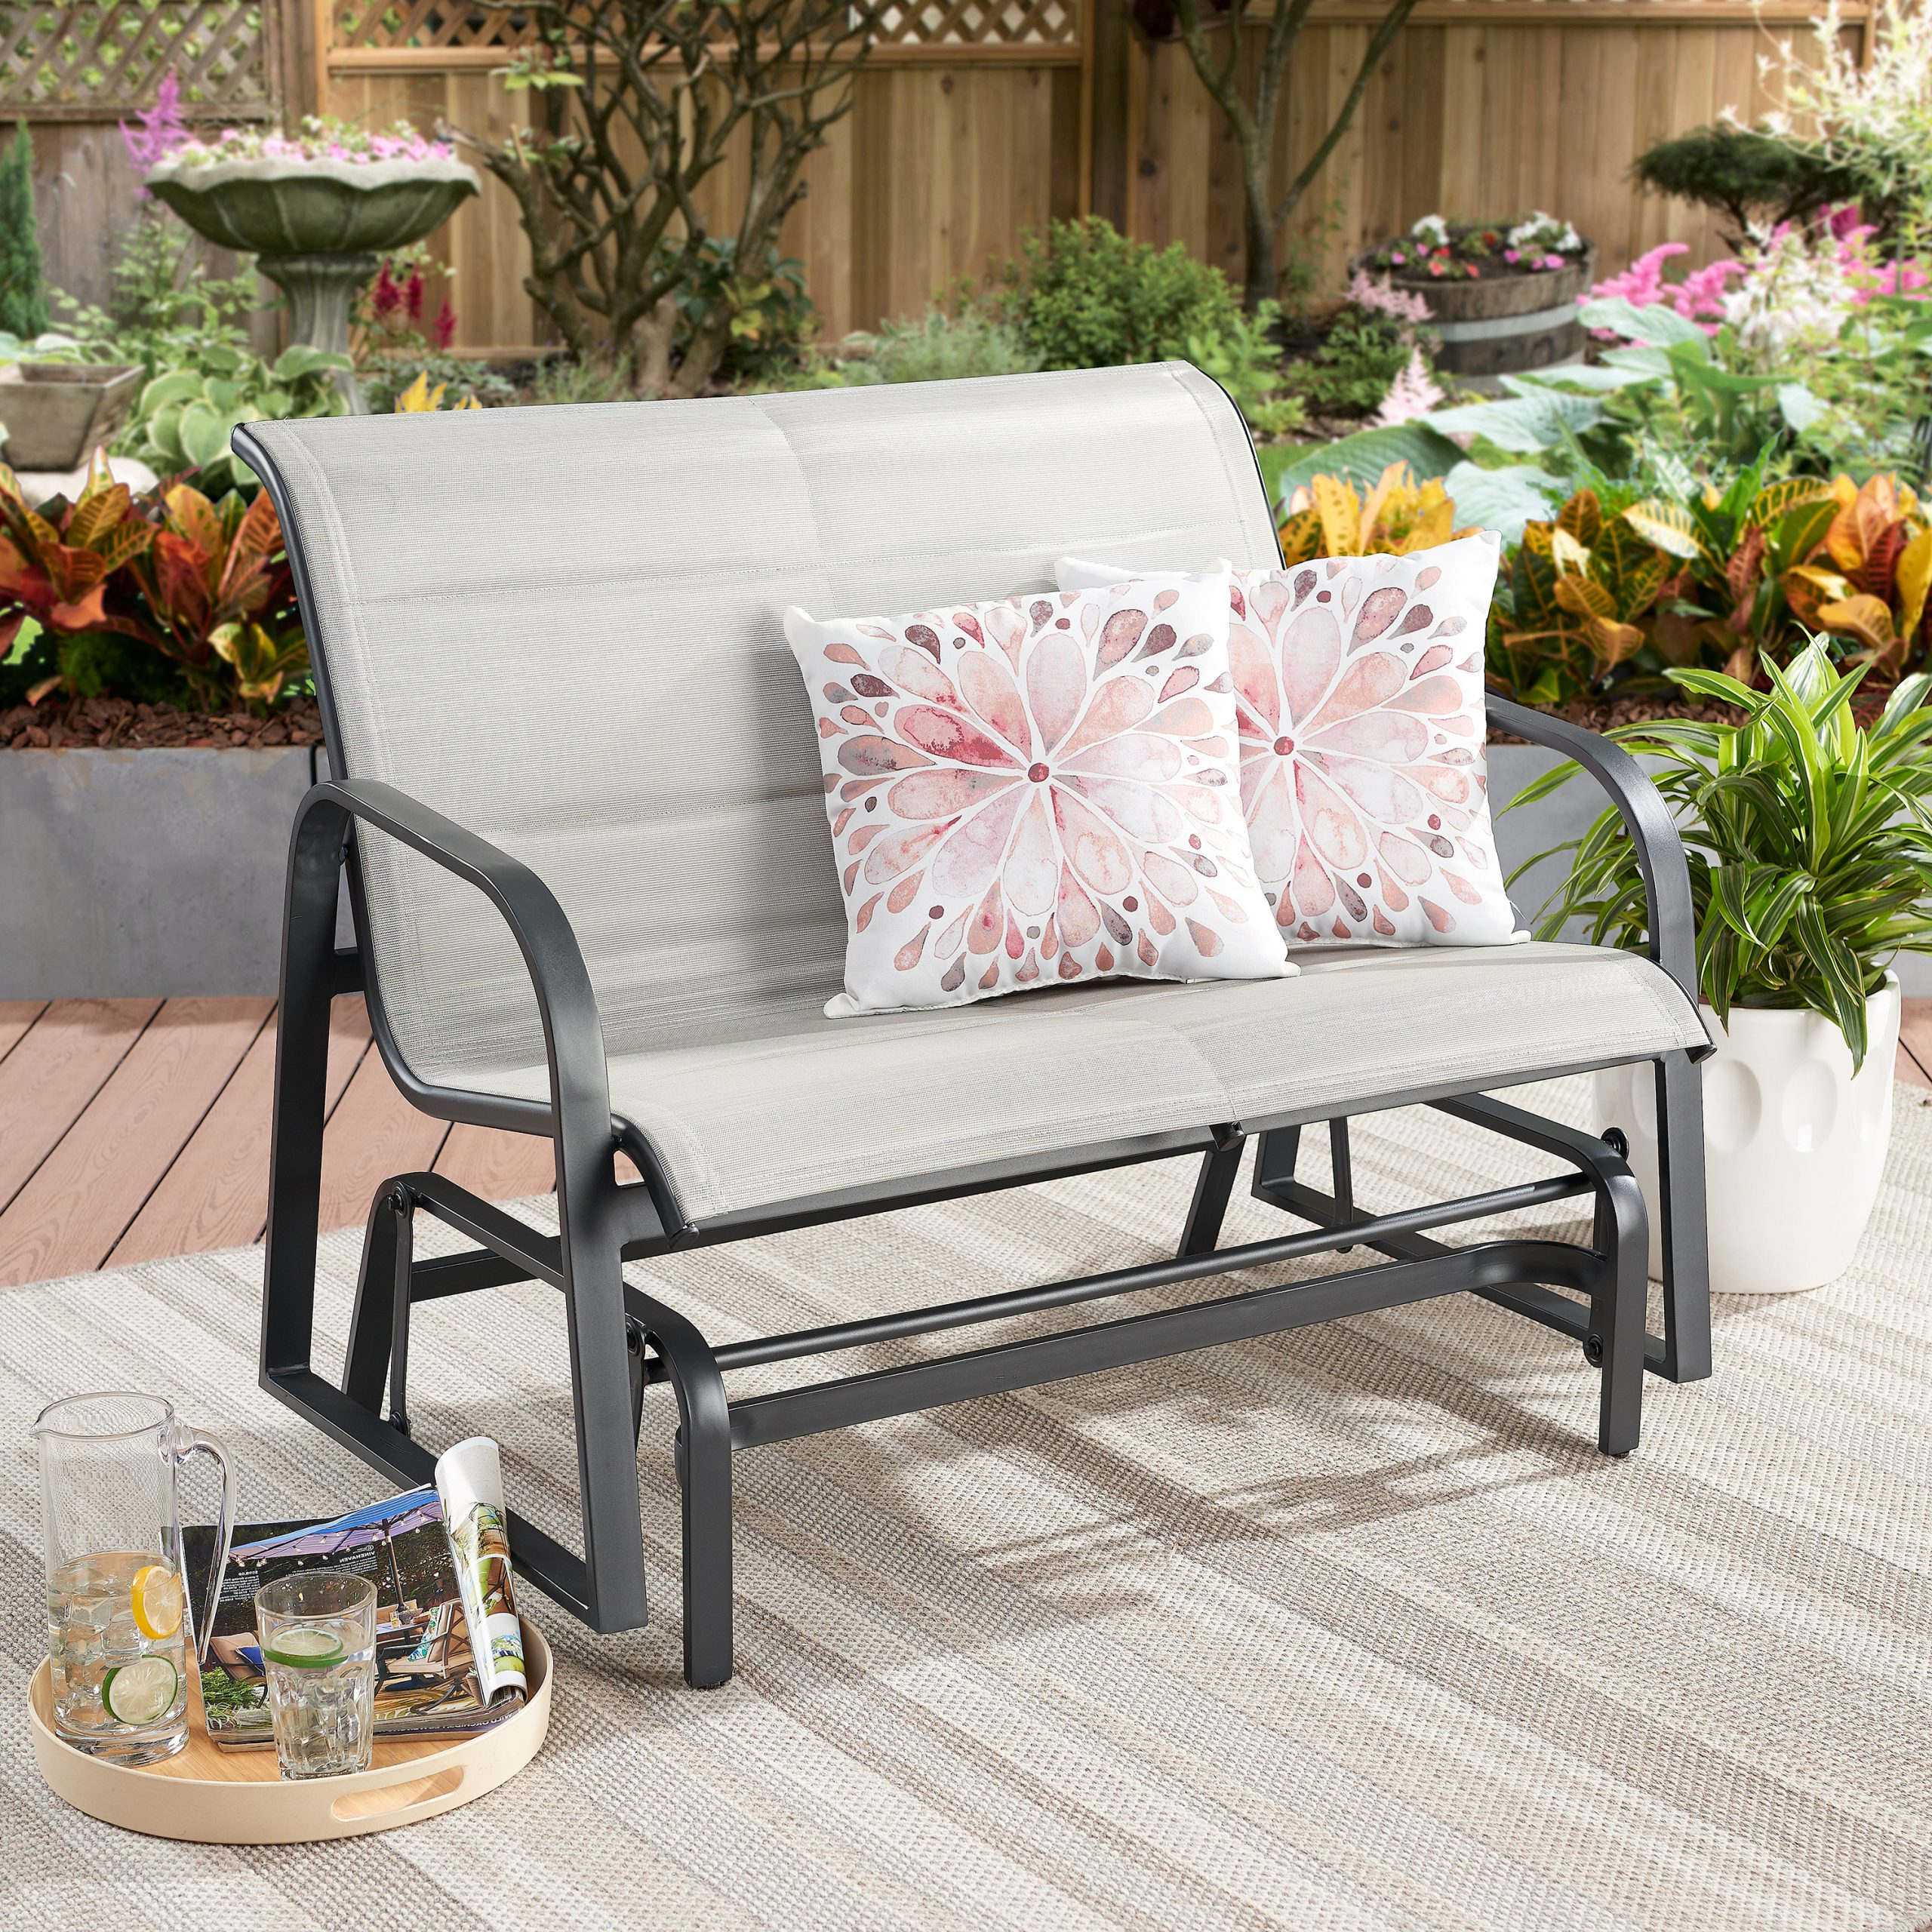 2019 Better Homes & Gardens Montrose Padded Sling Glider Bench Inside Padded Sling Double Glider Benches (View 12 of 30)